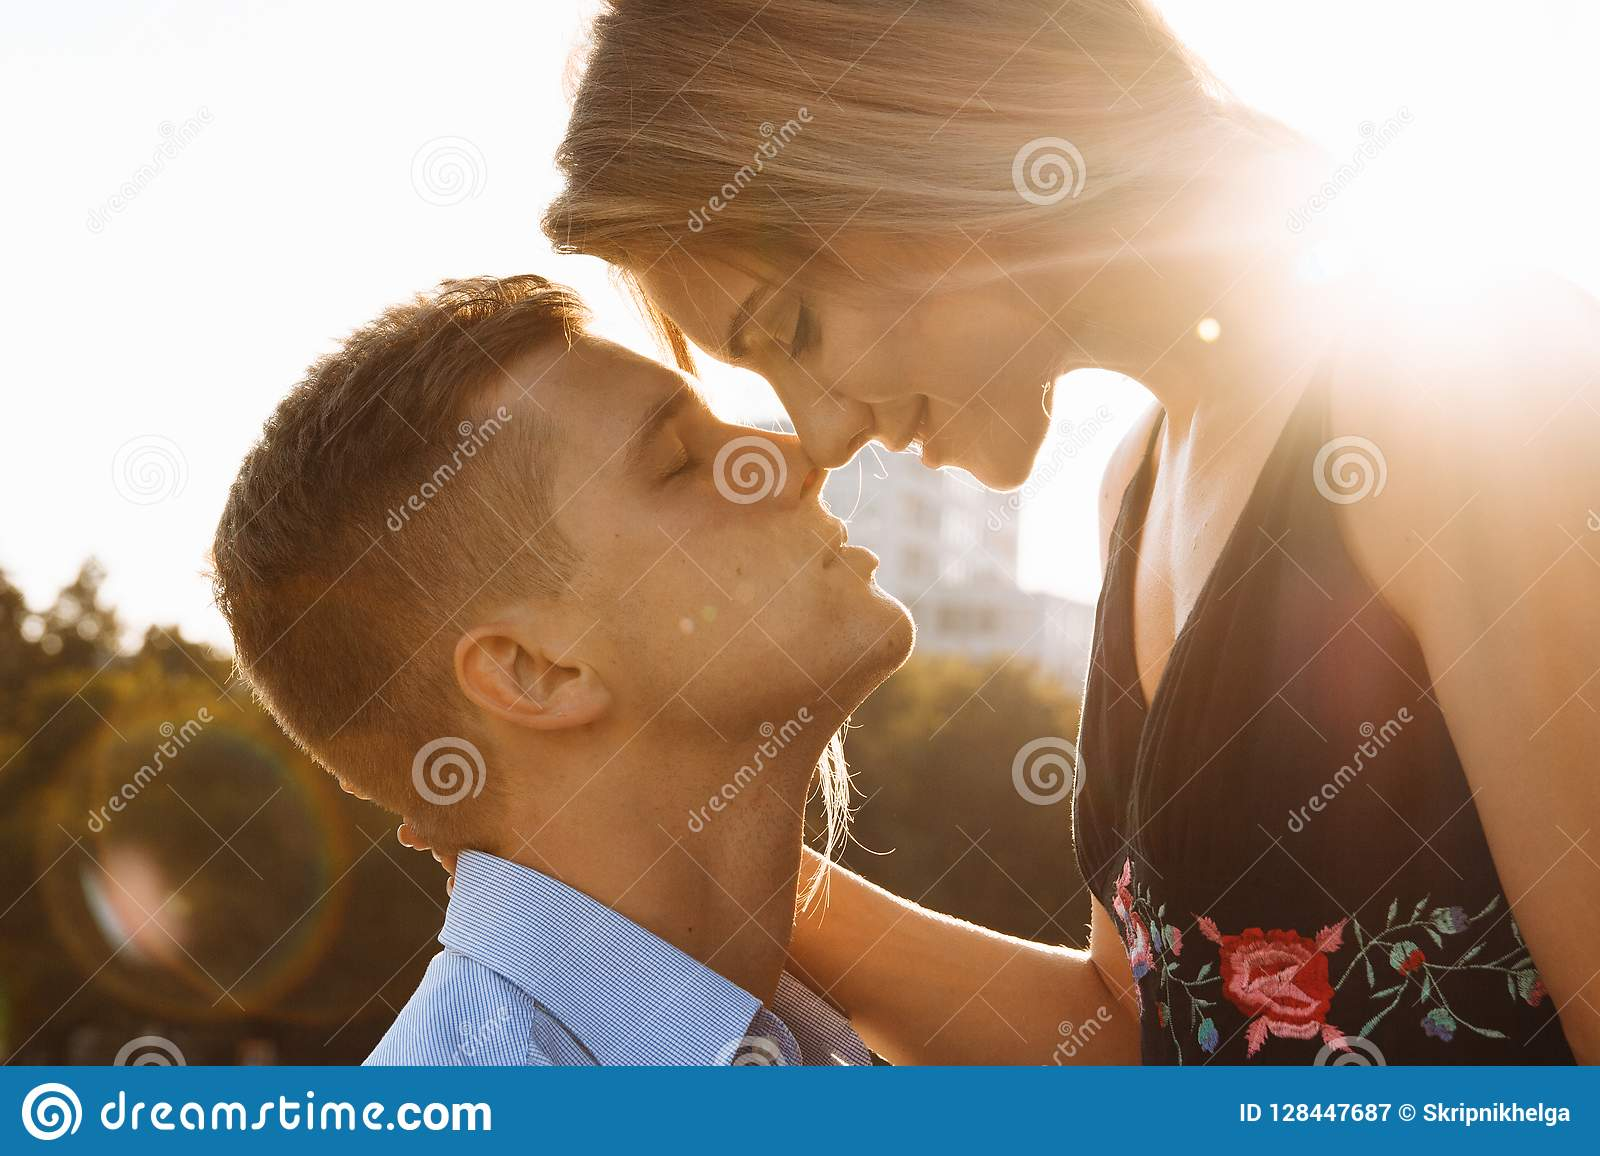 a girl kissing a boy on the neck